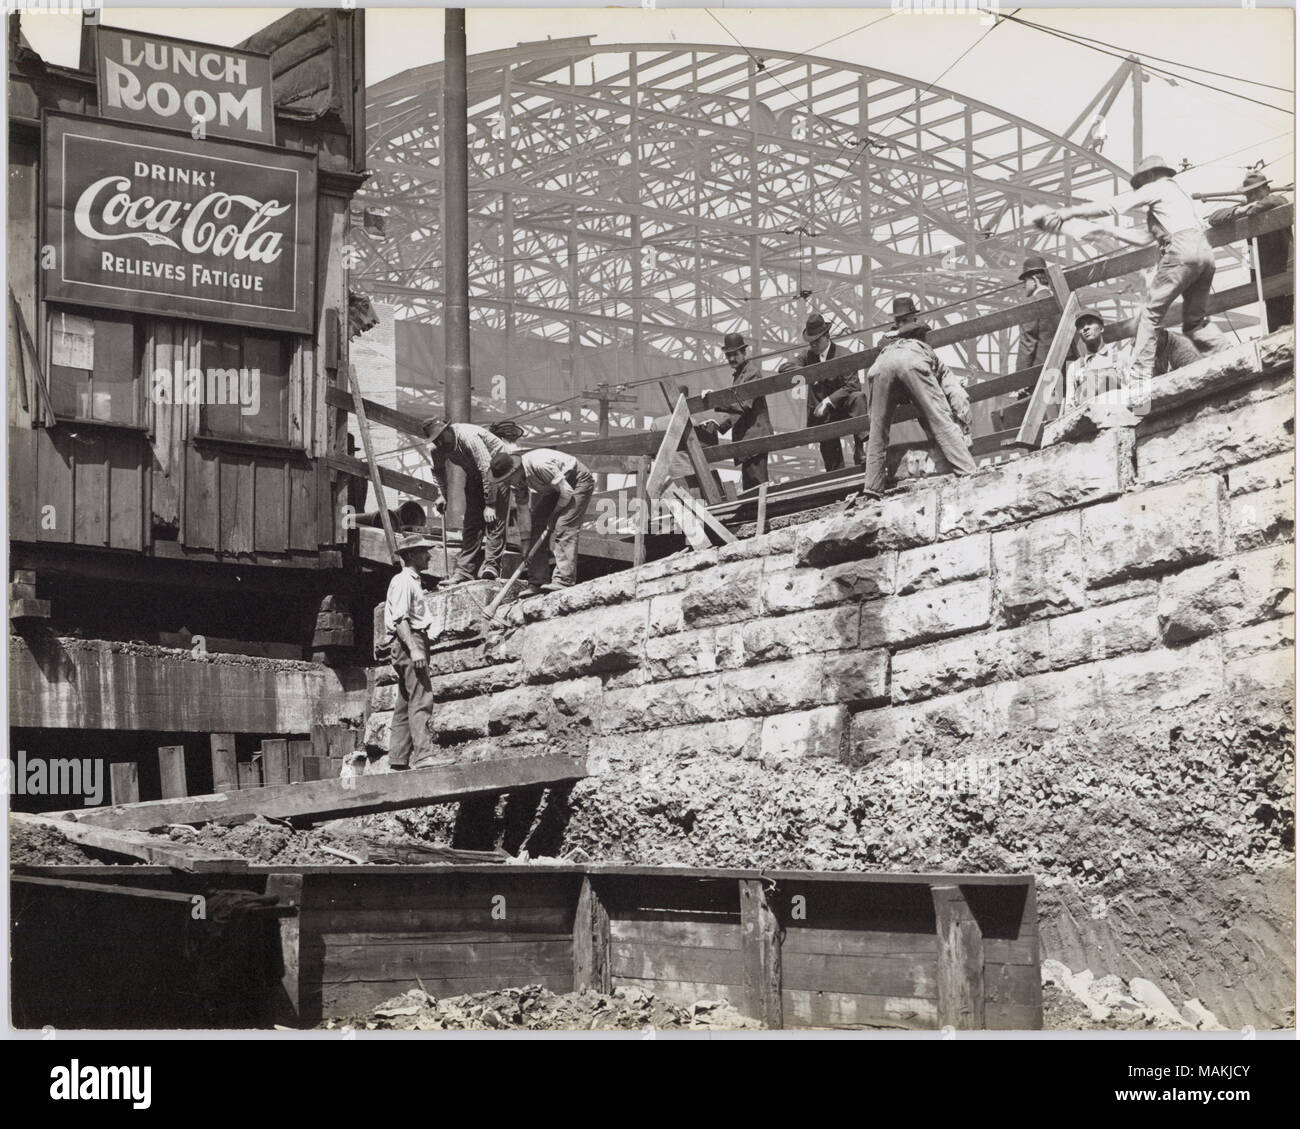 Horizontal, black and white photograph showing construction workers laboring on a stone wall. Several men wearing suits lean over a wooden fence overlooking the construction. The metal framework of the train sheds can be seen in the background, but it is unclear if the construction is part of the train sheds or is part of an unrelated building project. A small wooden building with signs reading 'Lunch Room' and 'Drink! Coca-Cola Relieves Fatigue' can be seen on the left side of the construction site. A typed note on the back of the print, possibly an exhibit caption, reads 'Building of the tra - Stock Image